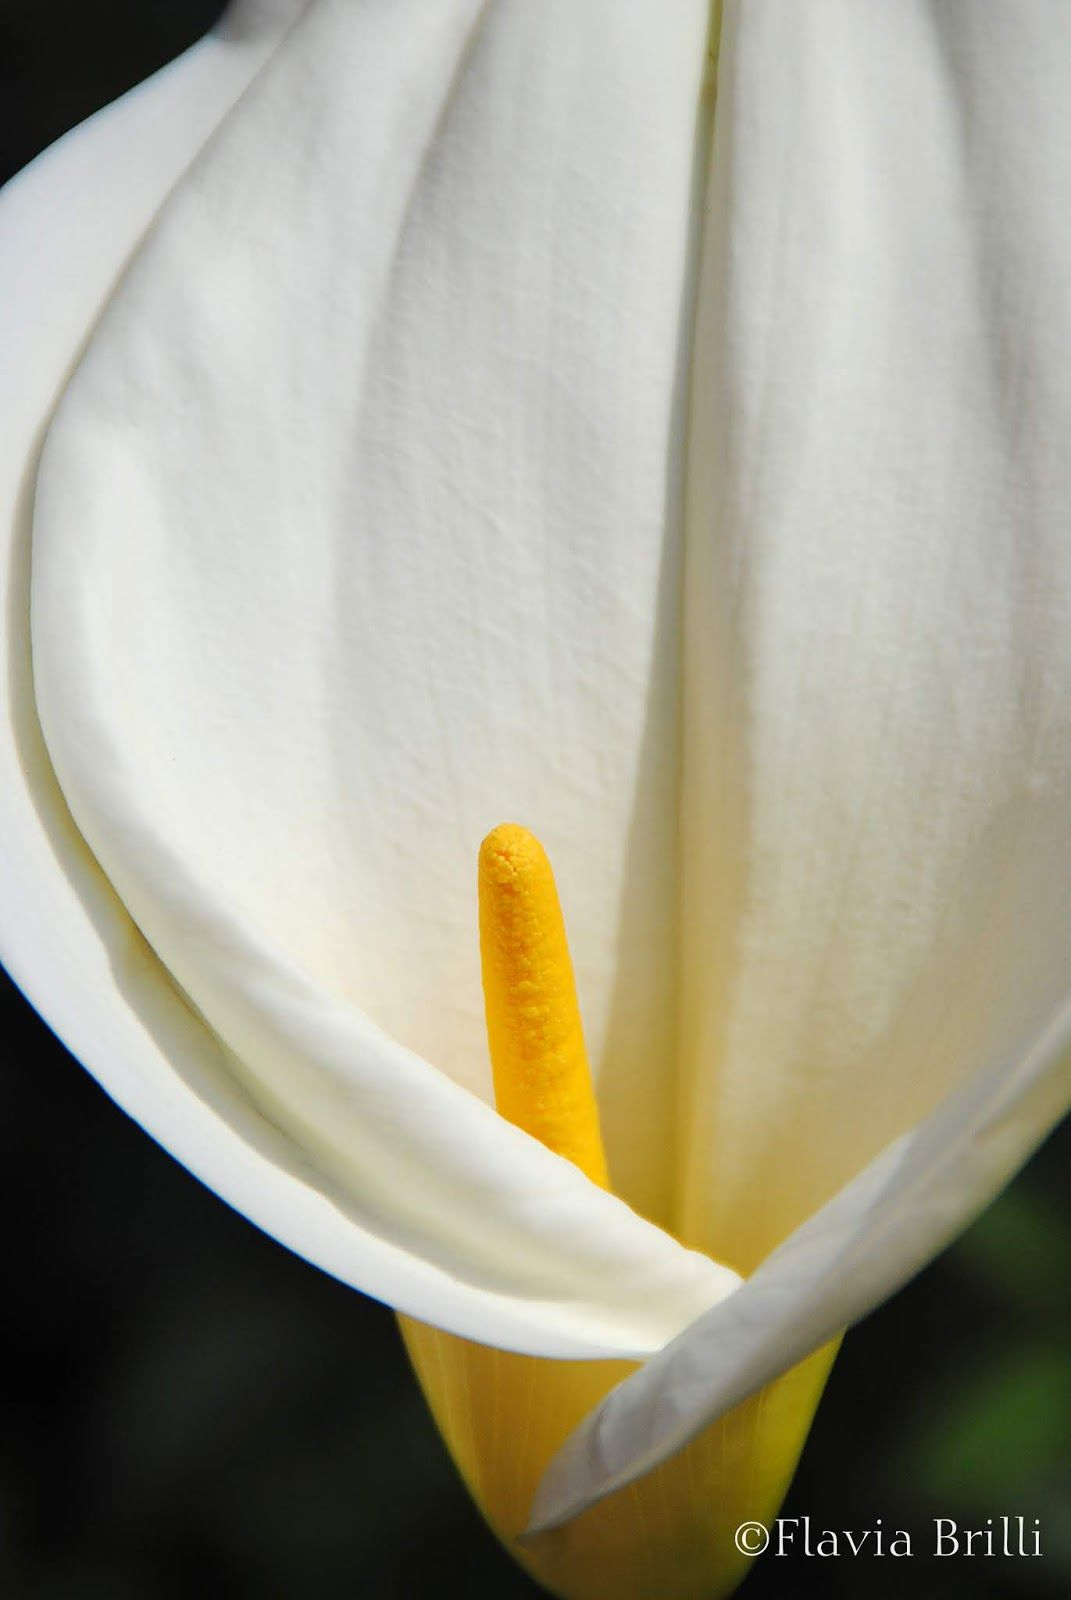 Calla Lily A True Sculptural Beauty It Beguiles Me Every Year Soon As It Appears In My Garden I Am Reminded Of The Great Photographer In 2020 Calla Lily Lily Calla